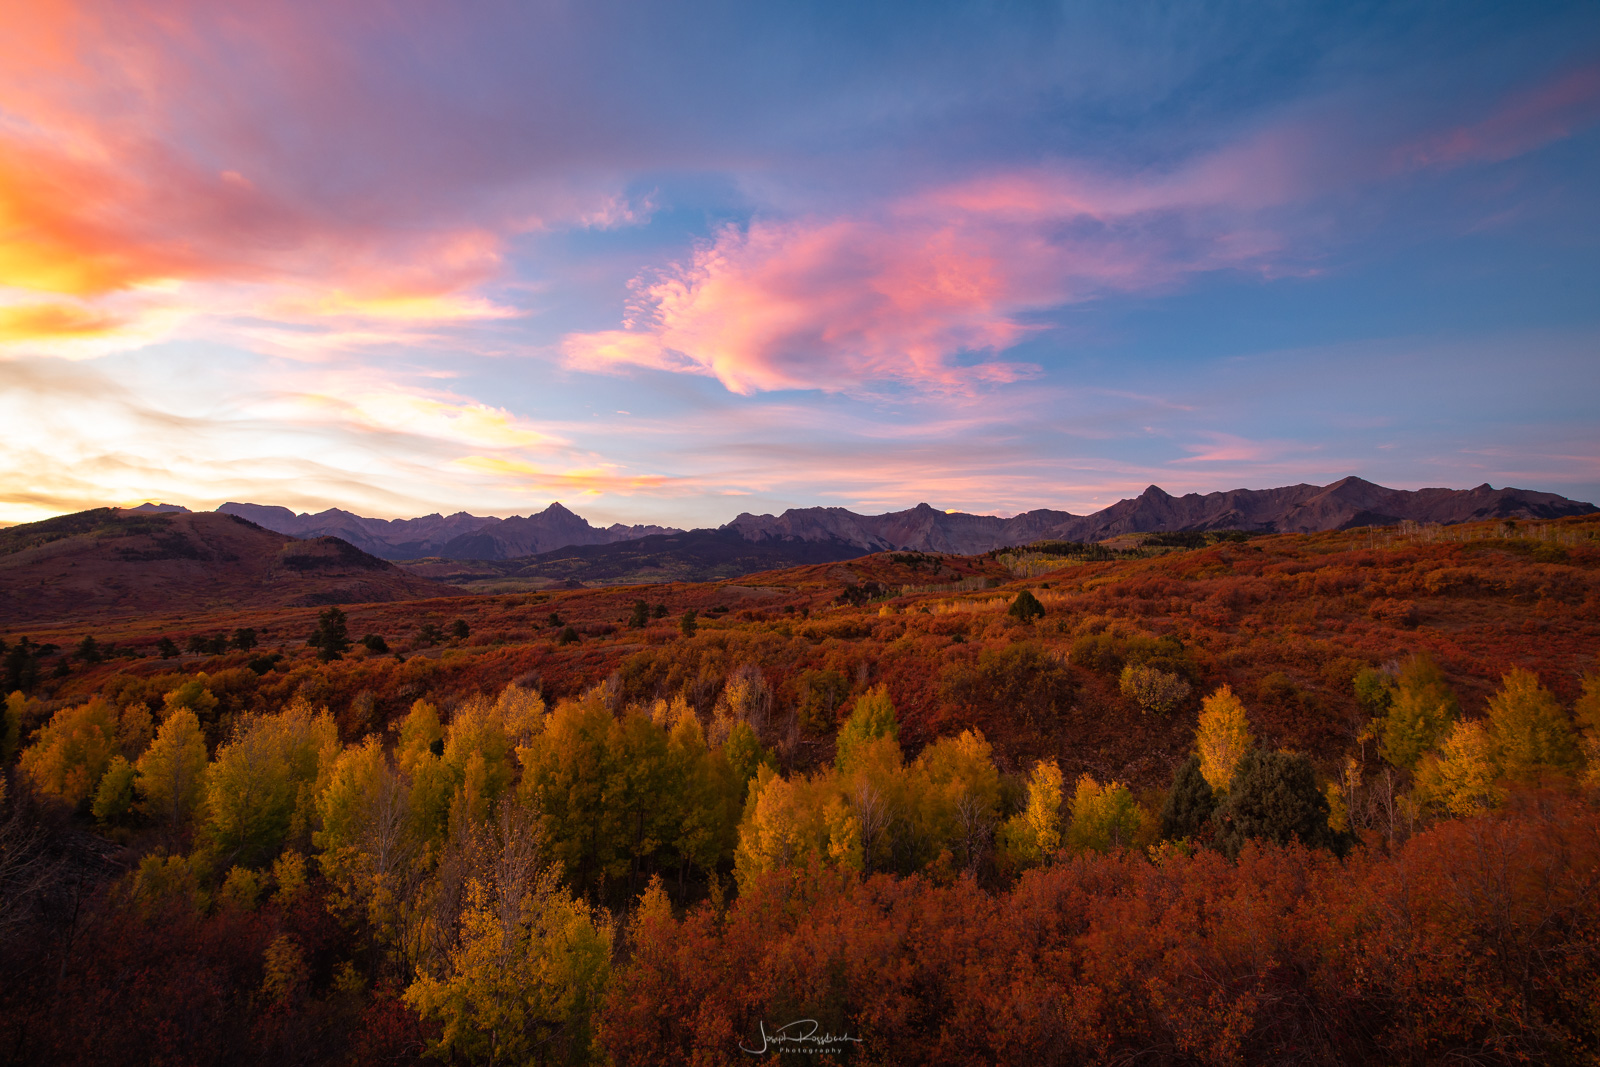 The Sneffels Range at sunrise from Dallas Divide.